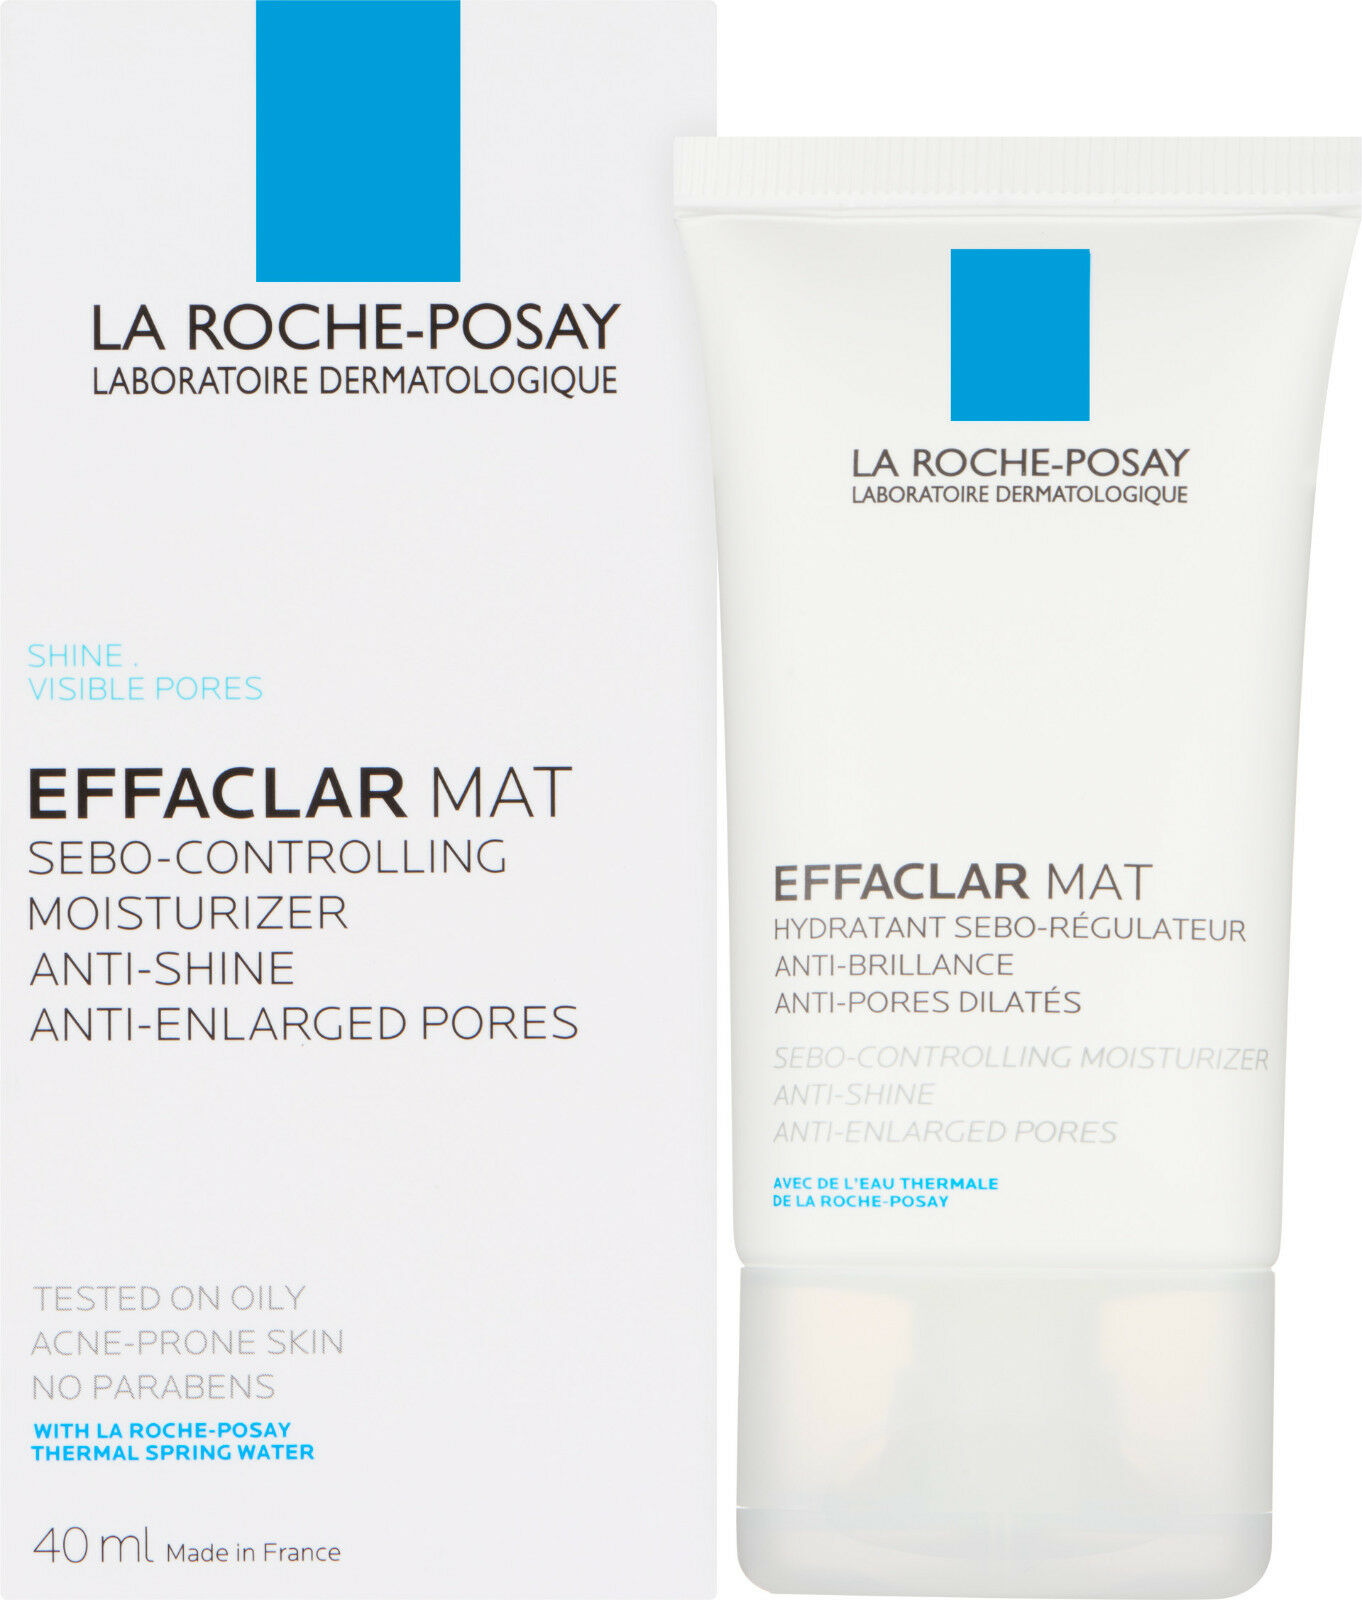 la sebo mat regulateur fr catalog matifiant posay ml mats hydratant roche gulateur effaclar r